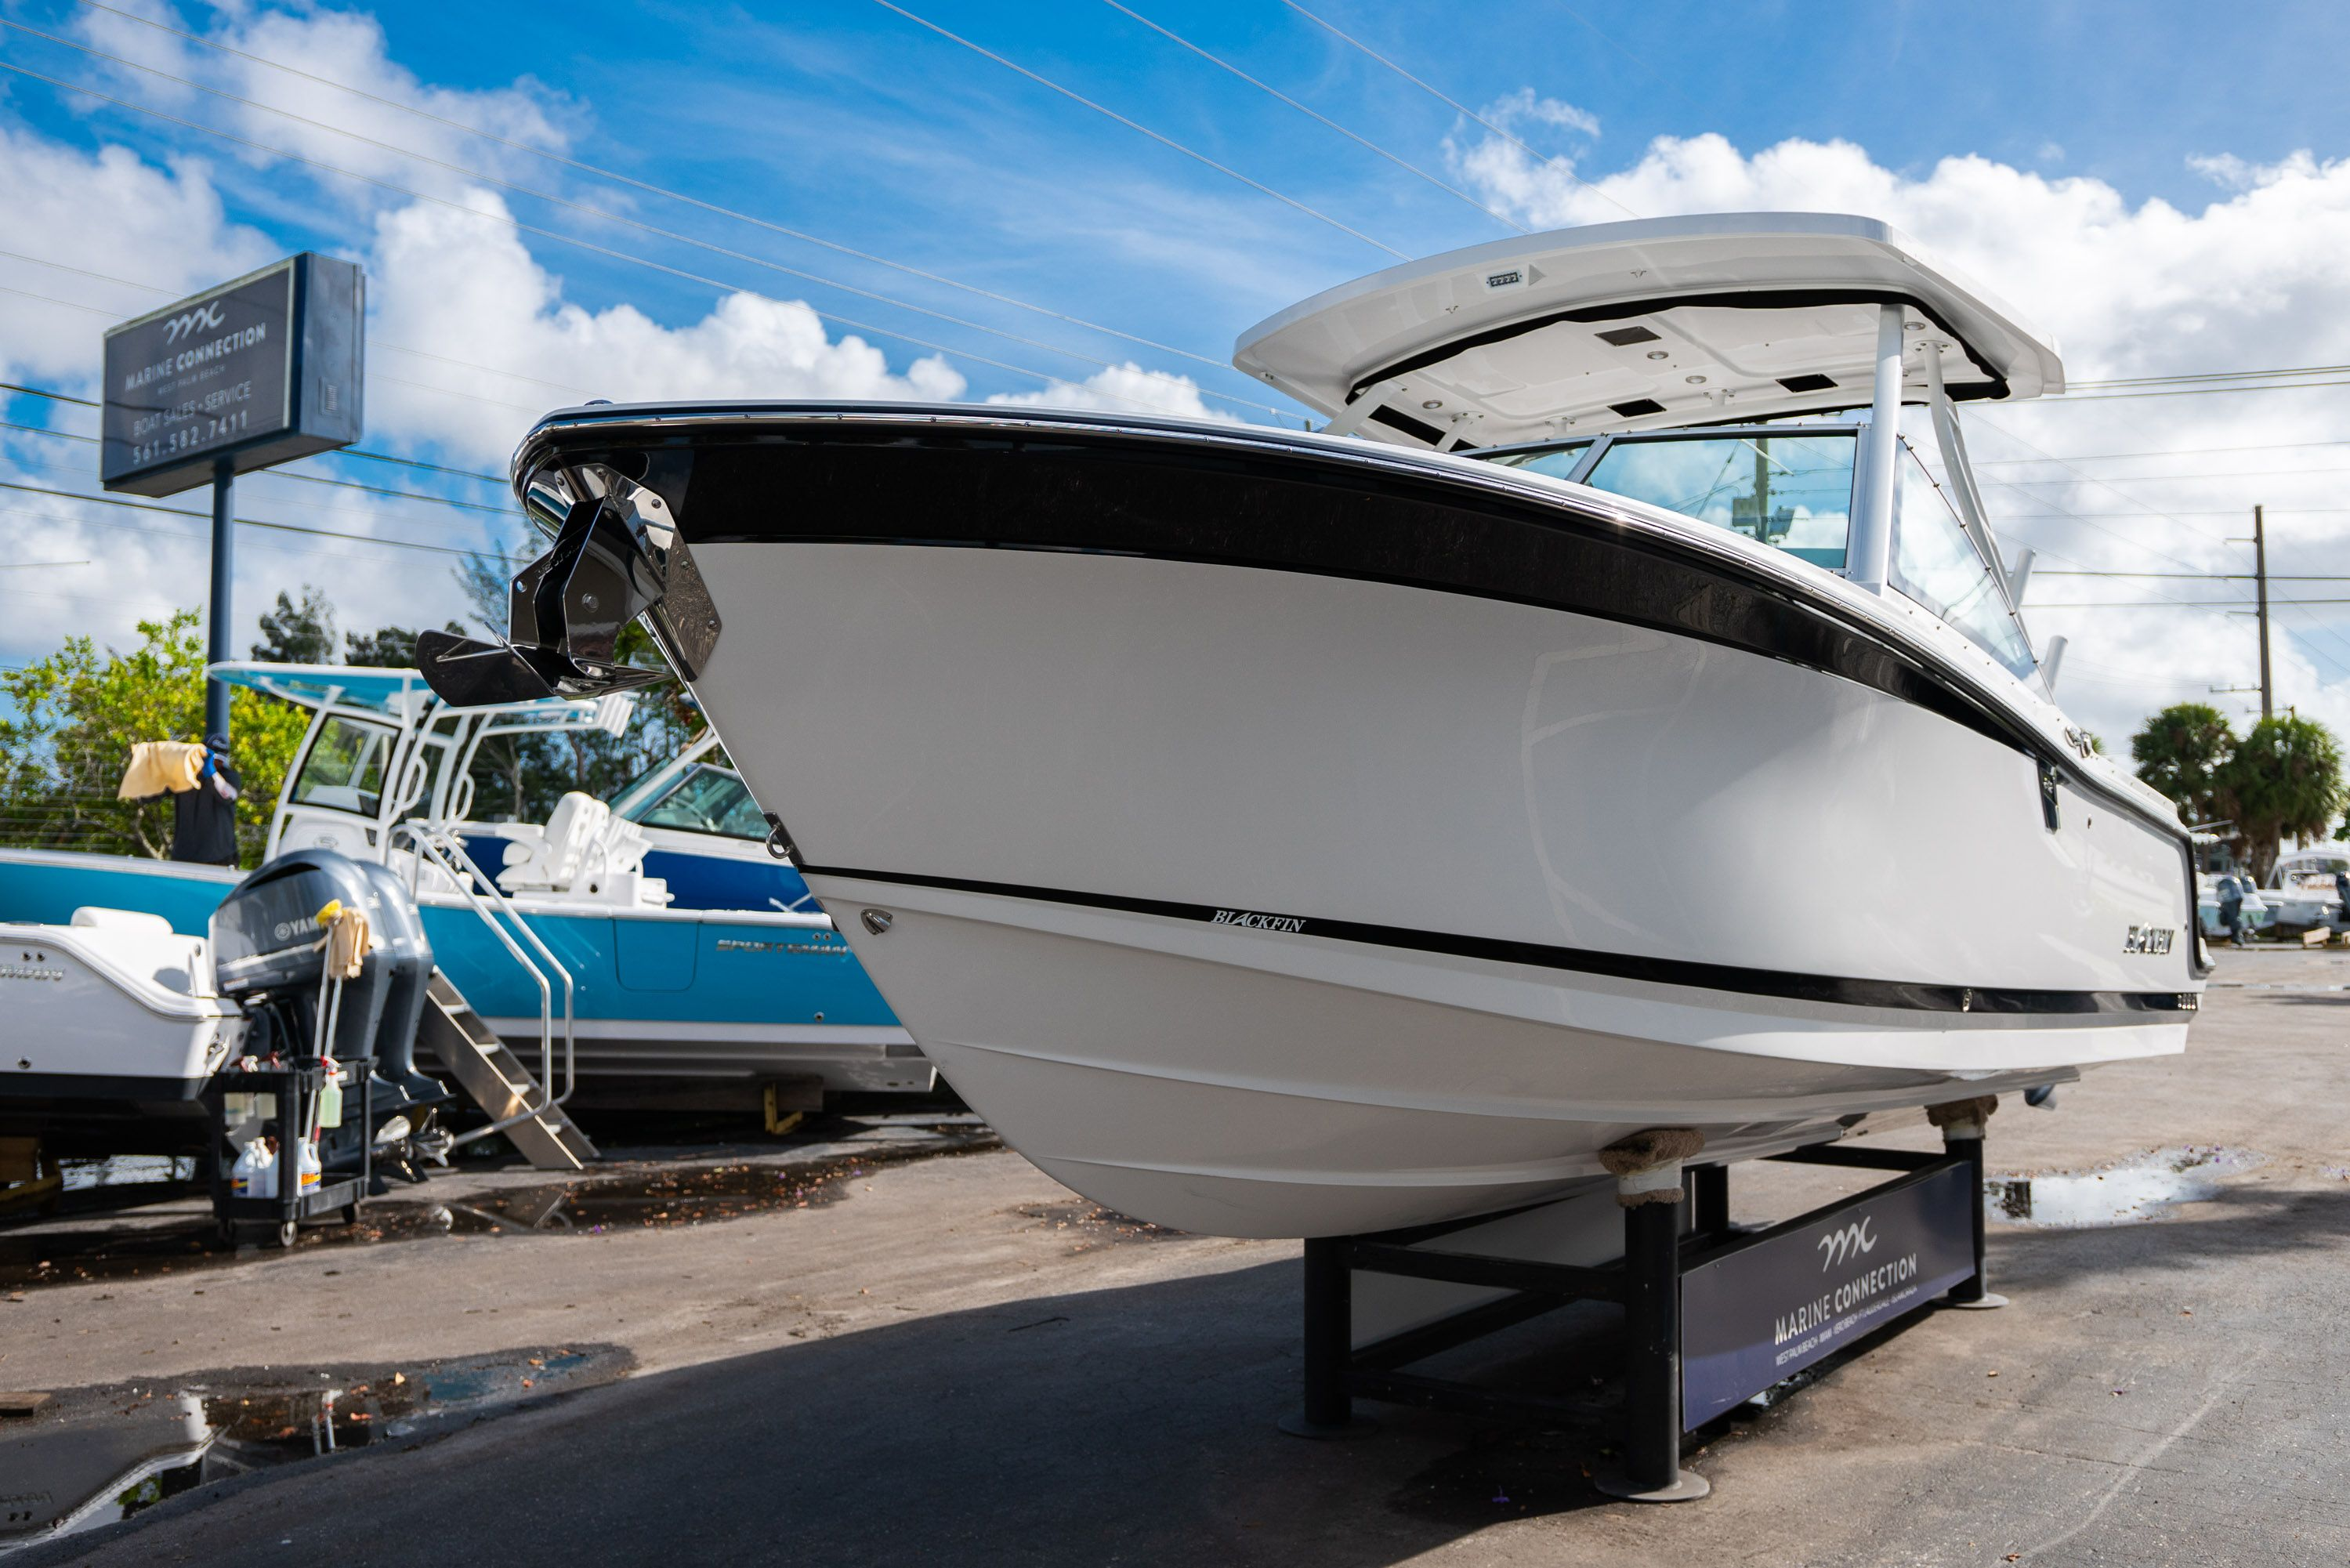 Thumbnail 3 for New 2020 Blackfin 242DC Dual Console boat for sale in West Palm Beach, FL